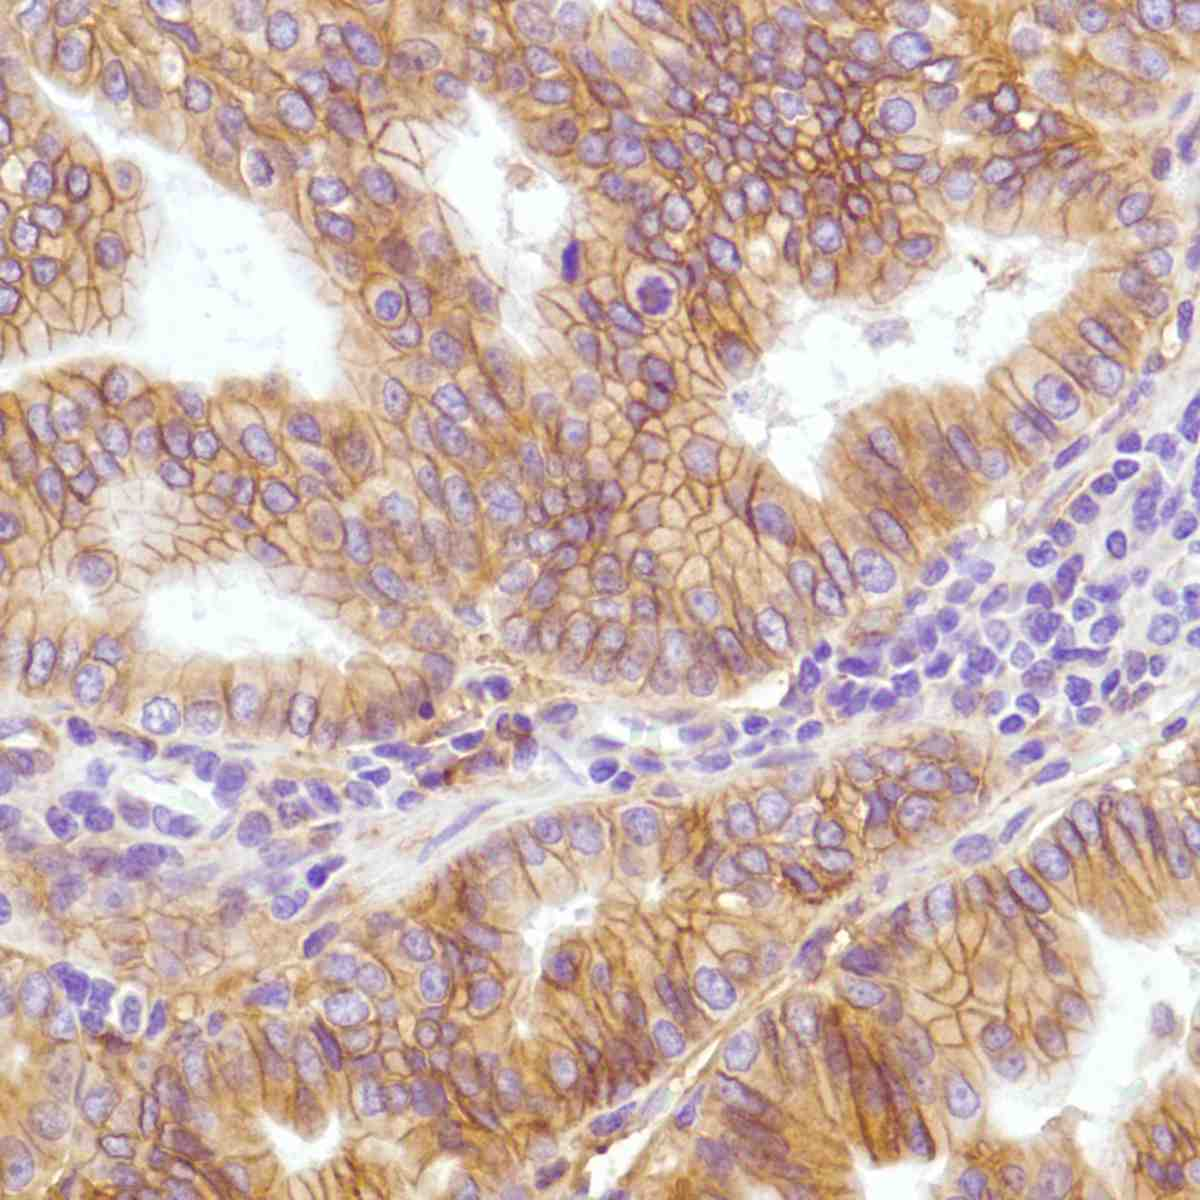 Human Stomach Adenocarcinoma stained with anti-B7-H3 antibody